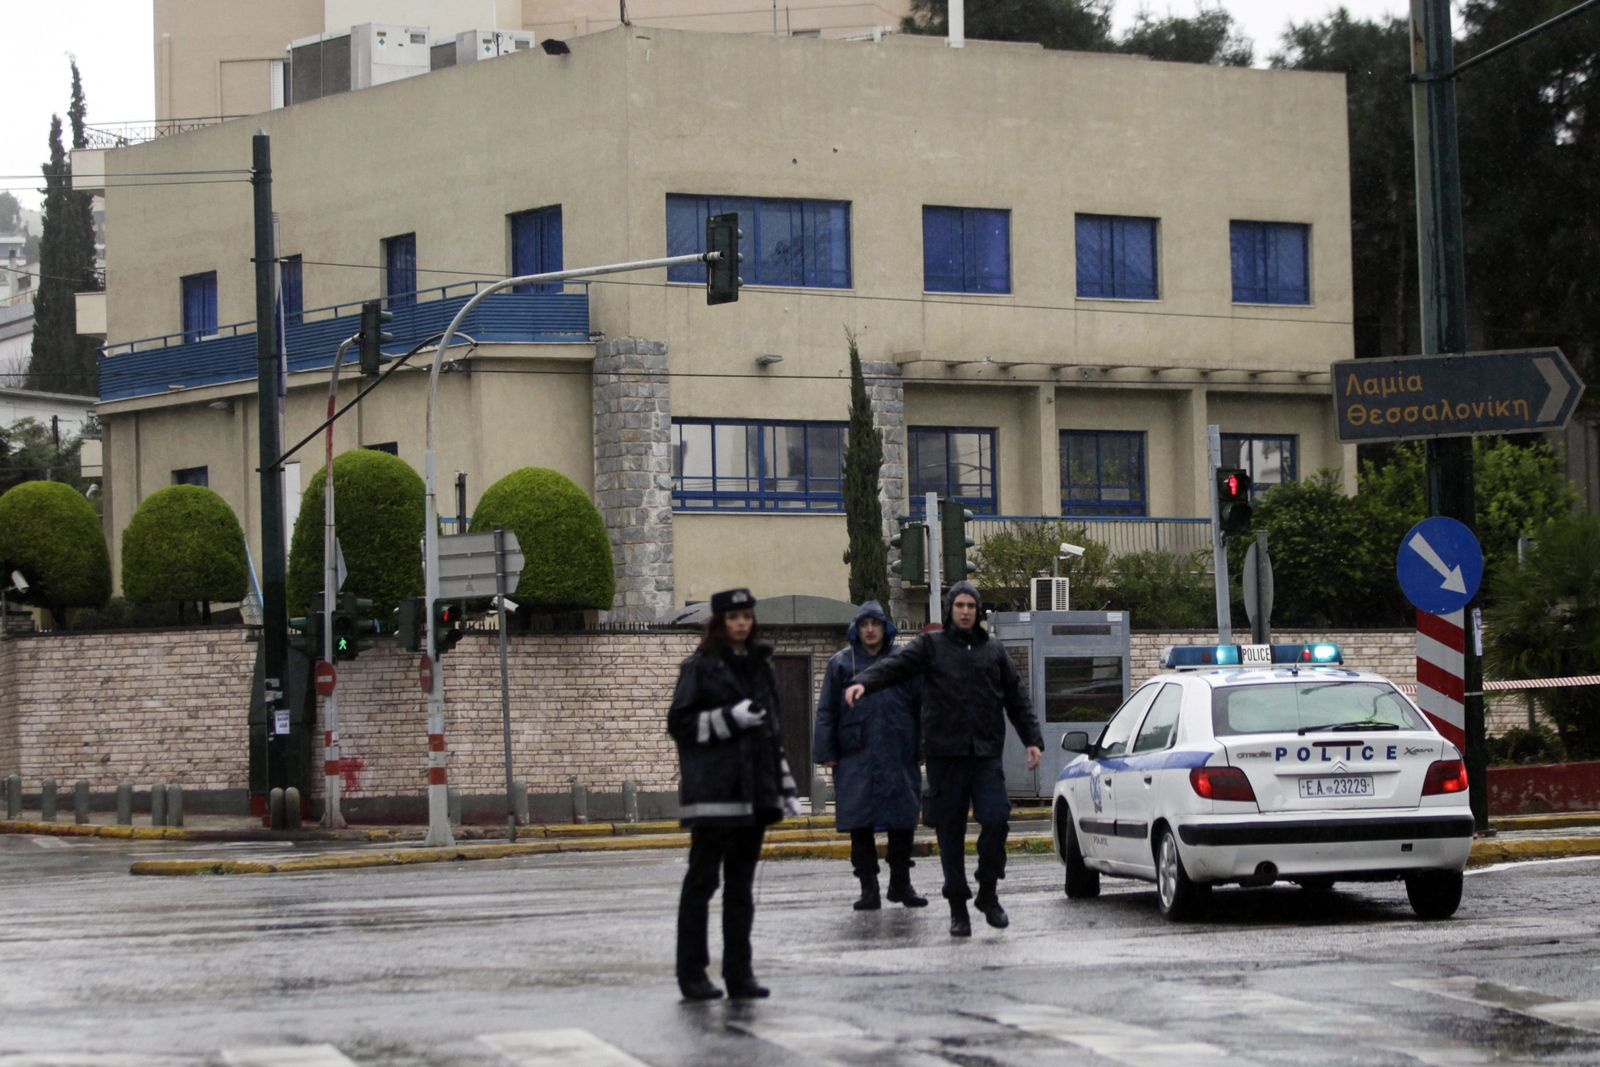 Gunfire attack with Kalashnikovs against Israeli embassy in Athen